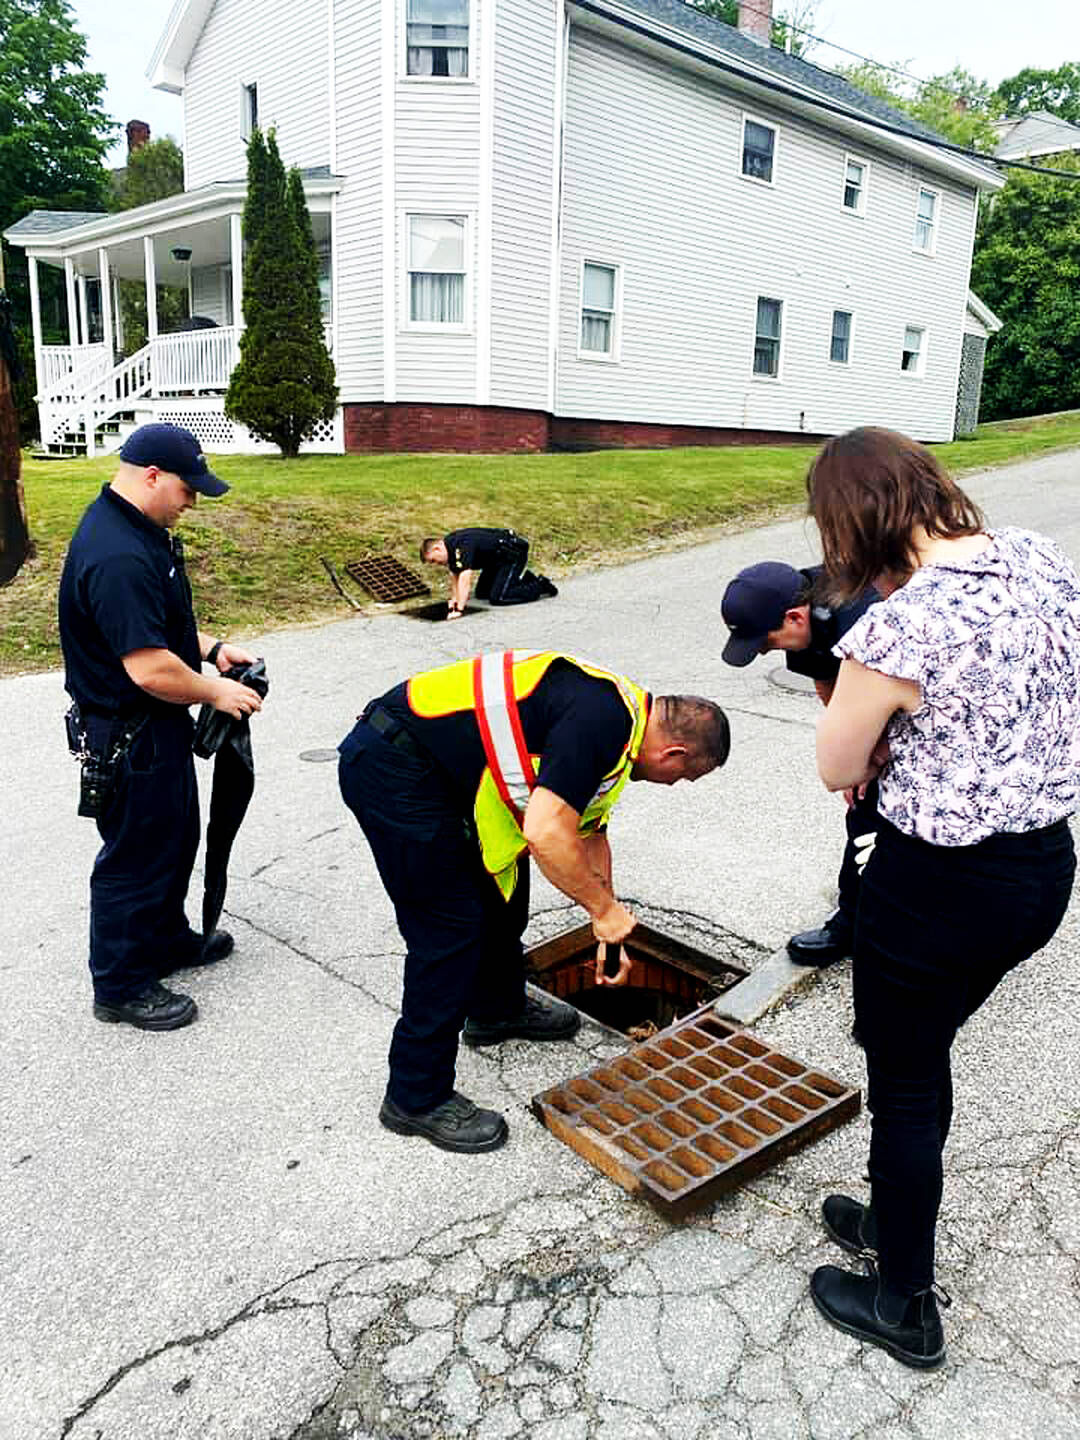 Ducklings Saved Thanks To 'Quack' Response From LPD, LFD